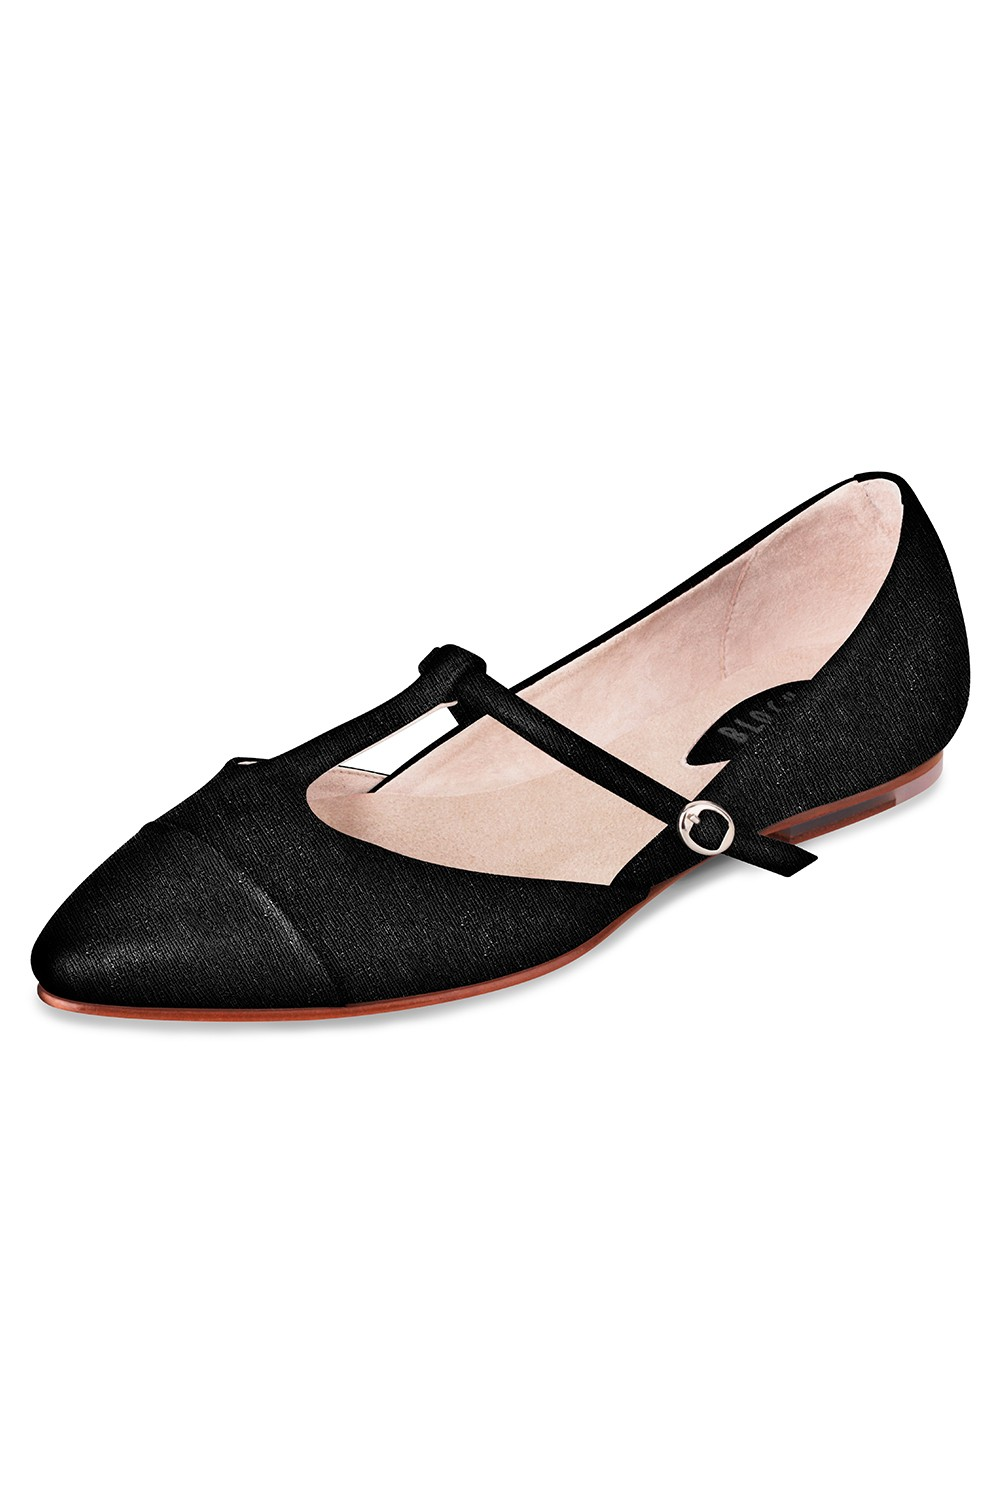 Genevieve Ladies Ballet Flat Womens Fashion Shoes